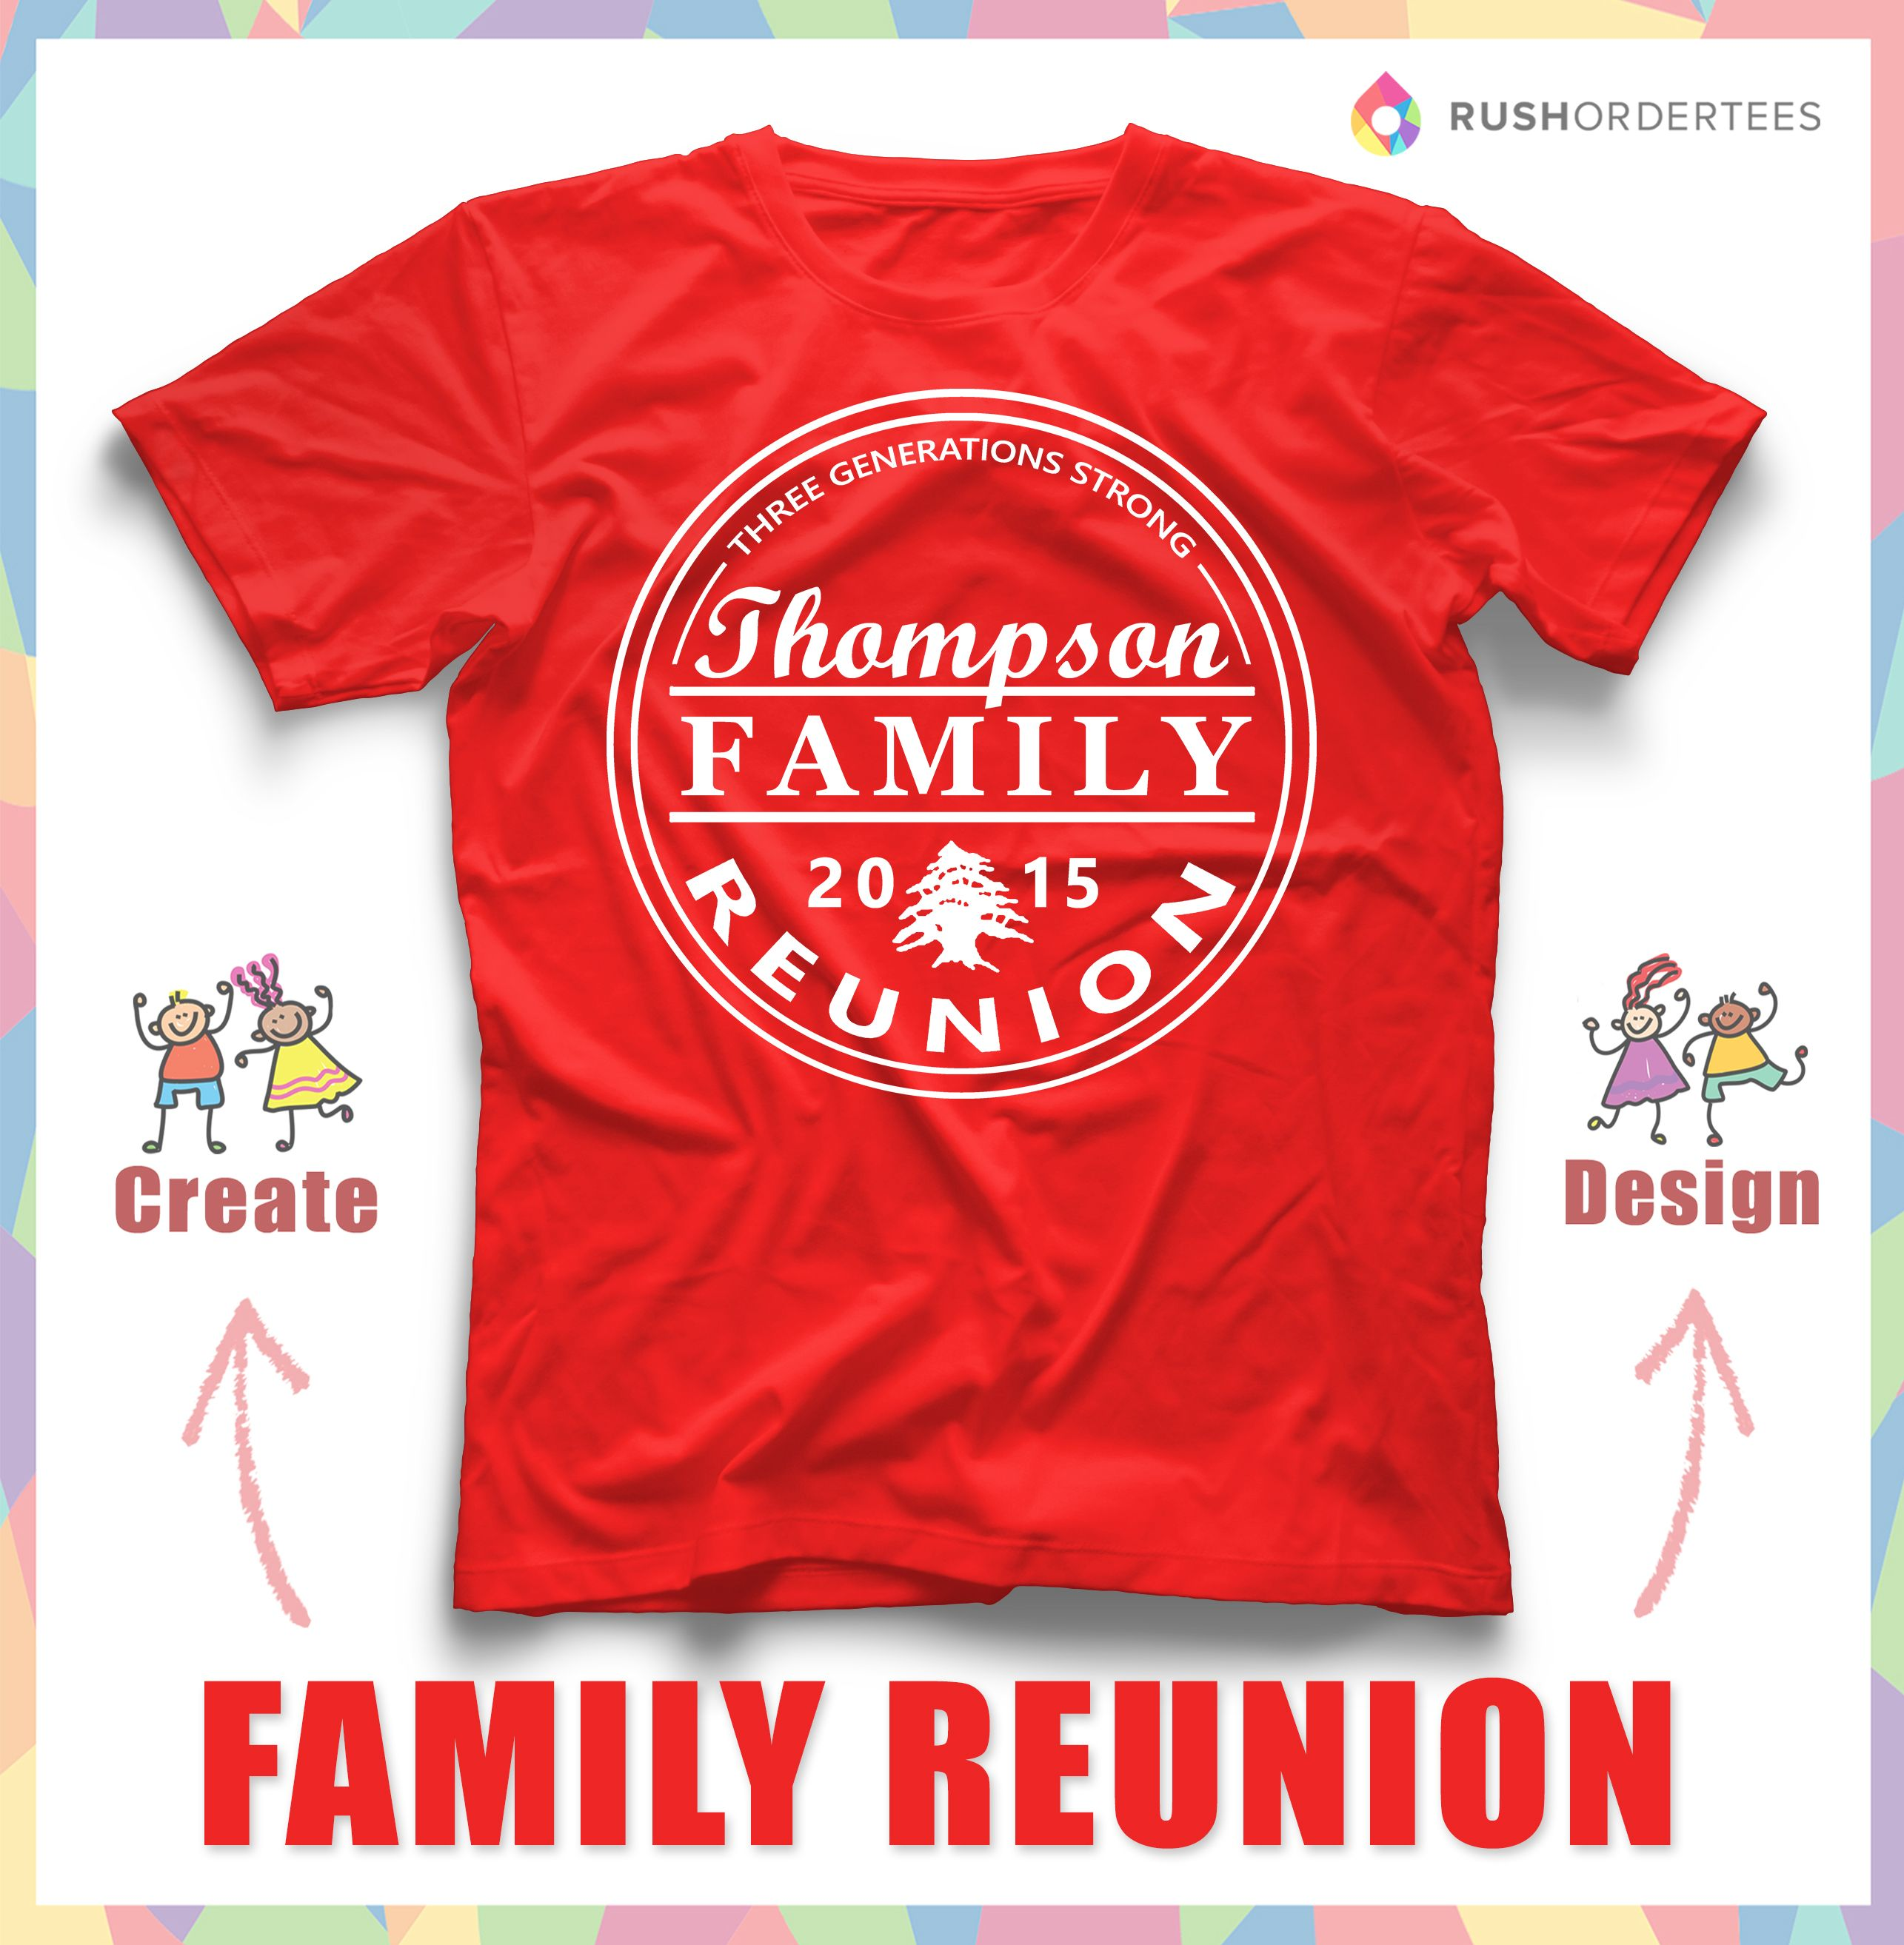 Family Reunion Shirt Design Ideas family reunion t shirt design fro 2014 classic family reunion tree design add Family Reunion T Shirt Design Ideas Create A Custom Reunion Shirt For Your Next